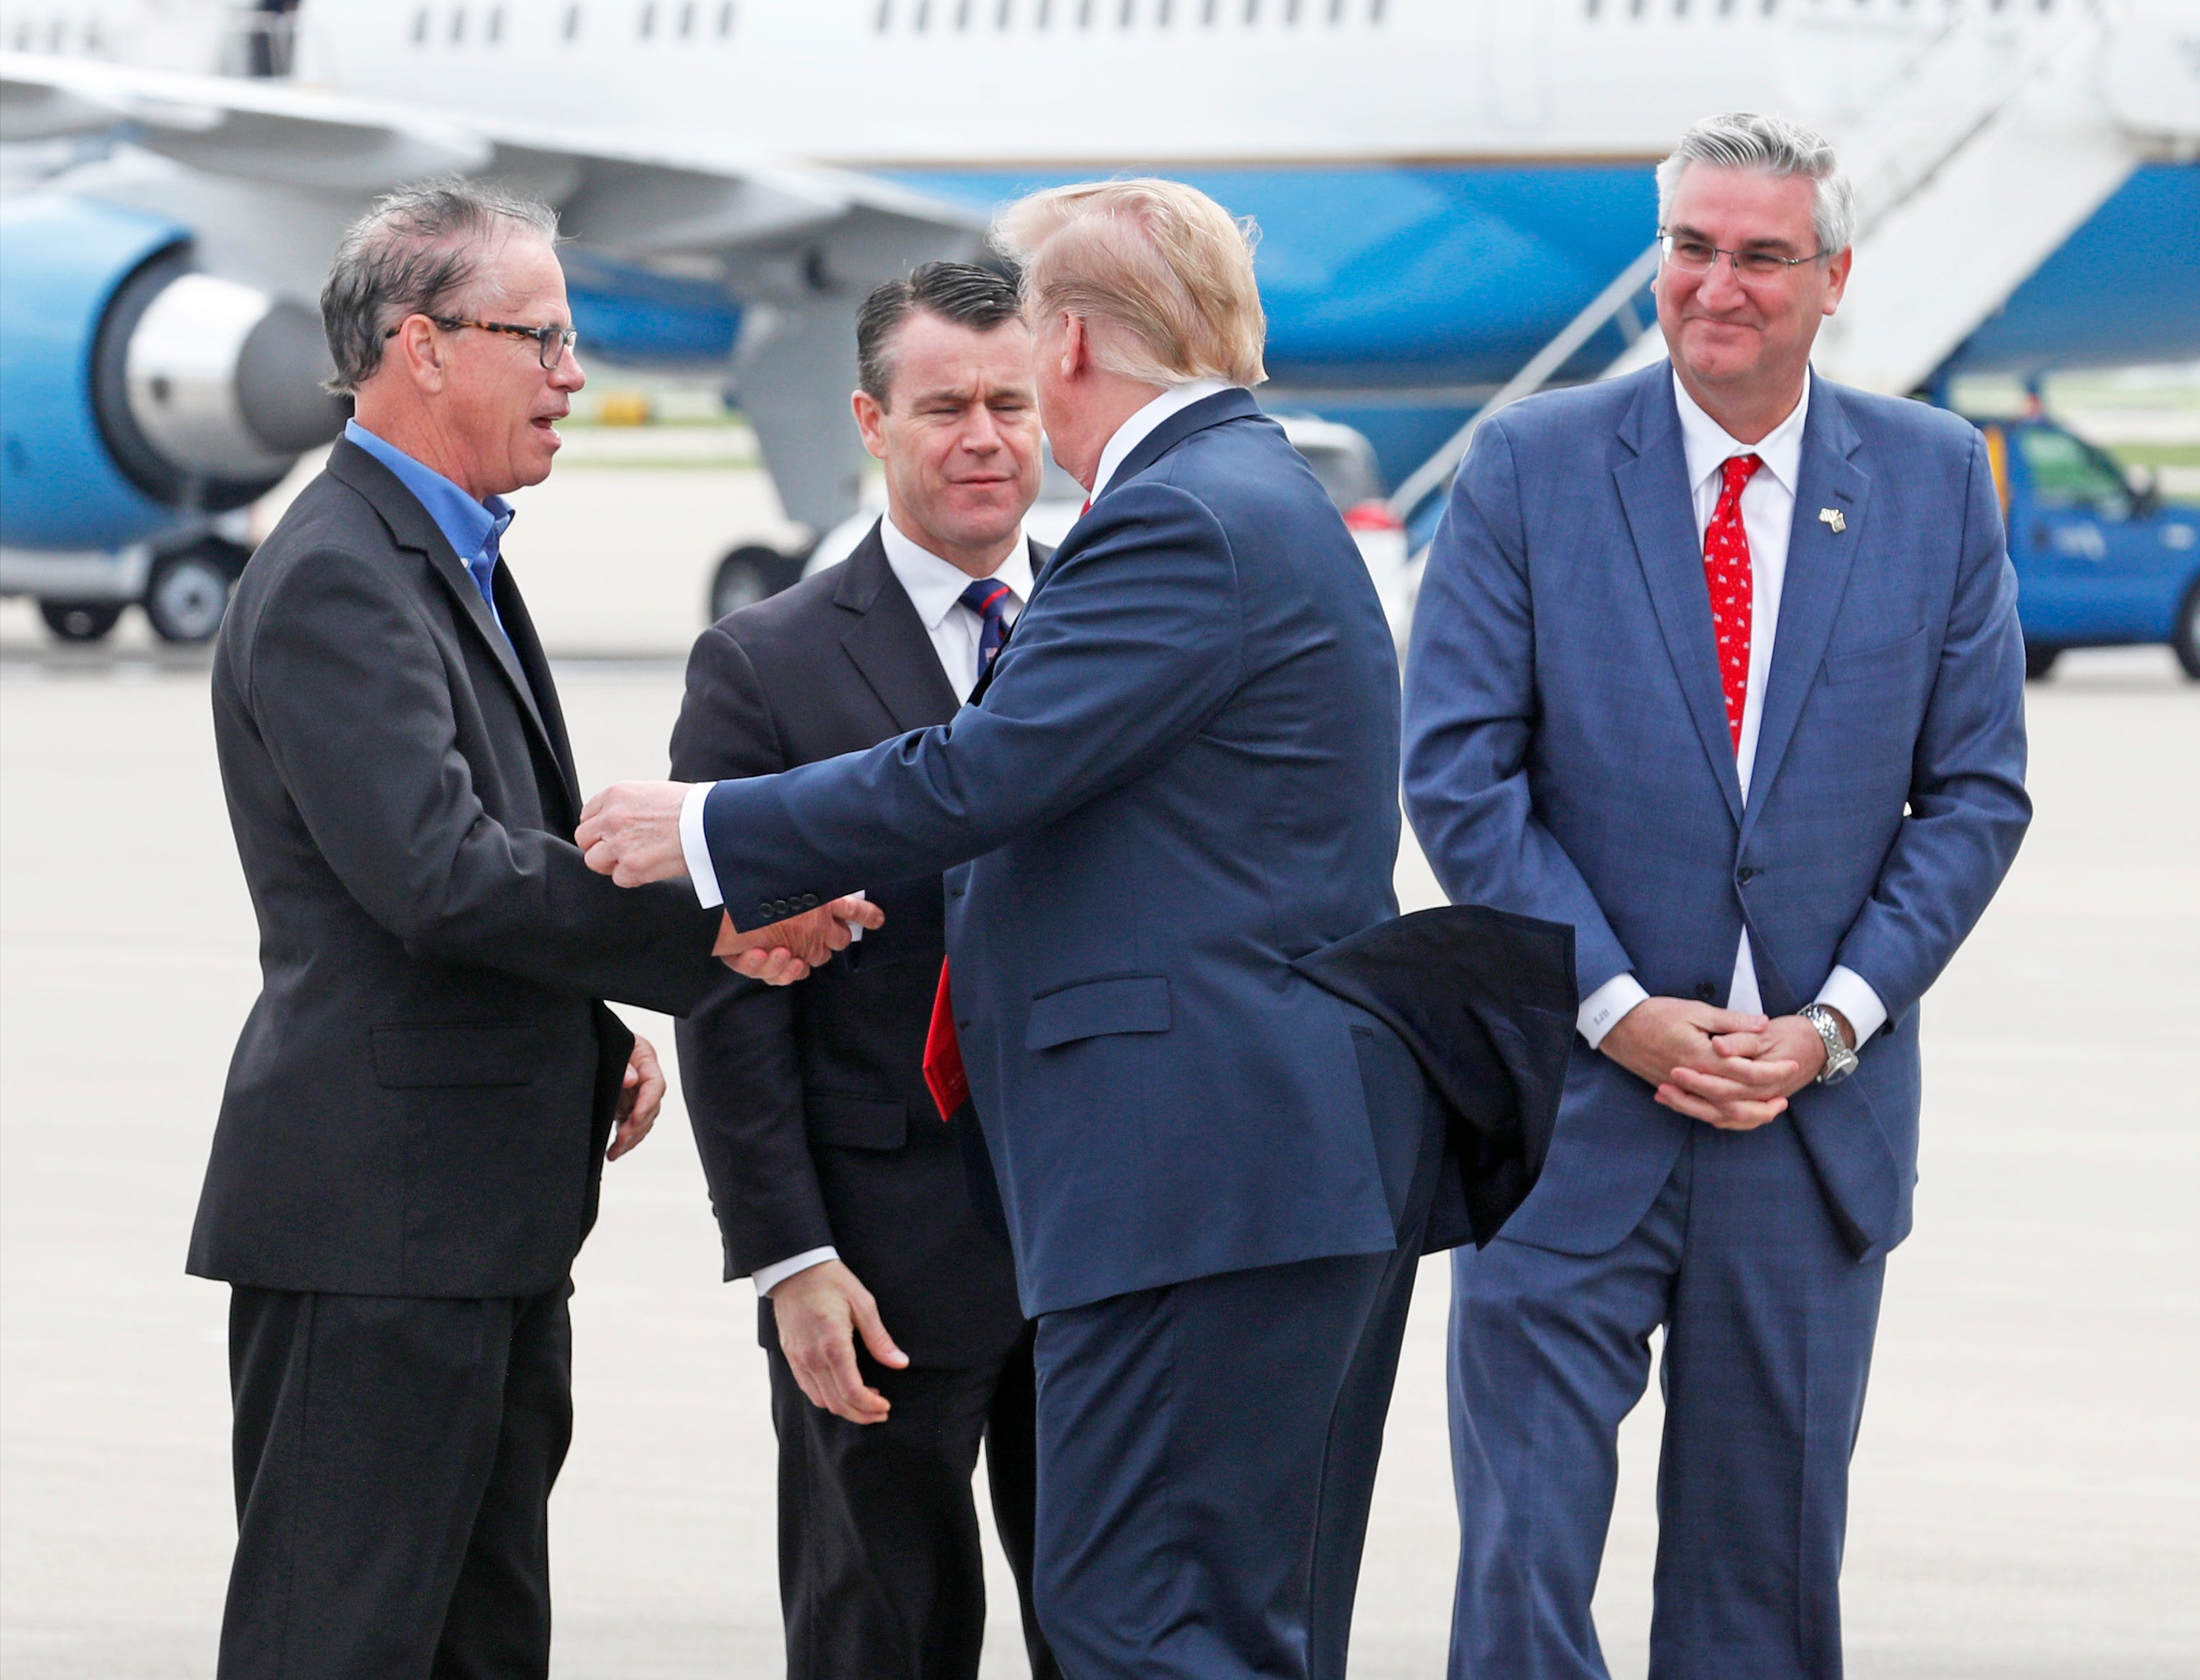 President Donald Trump shakes hands with Sen. Mike Braun as Sen. Todd Young and Gov. Eric Holcomb look on after the president arrived at the Indianapolis International Airport on Friday, April 26, 2019. Trump will speak at the NRA Institute for Legislative Action (NRA-ILA) Leadership Forum at Lucas Oil Stadium.